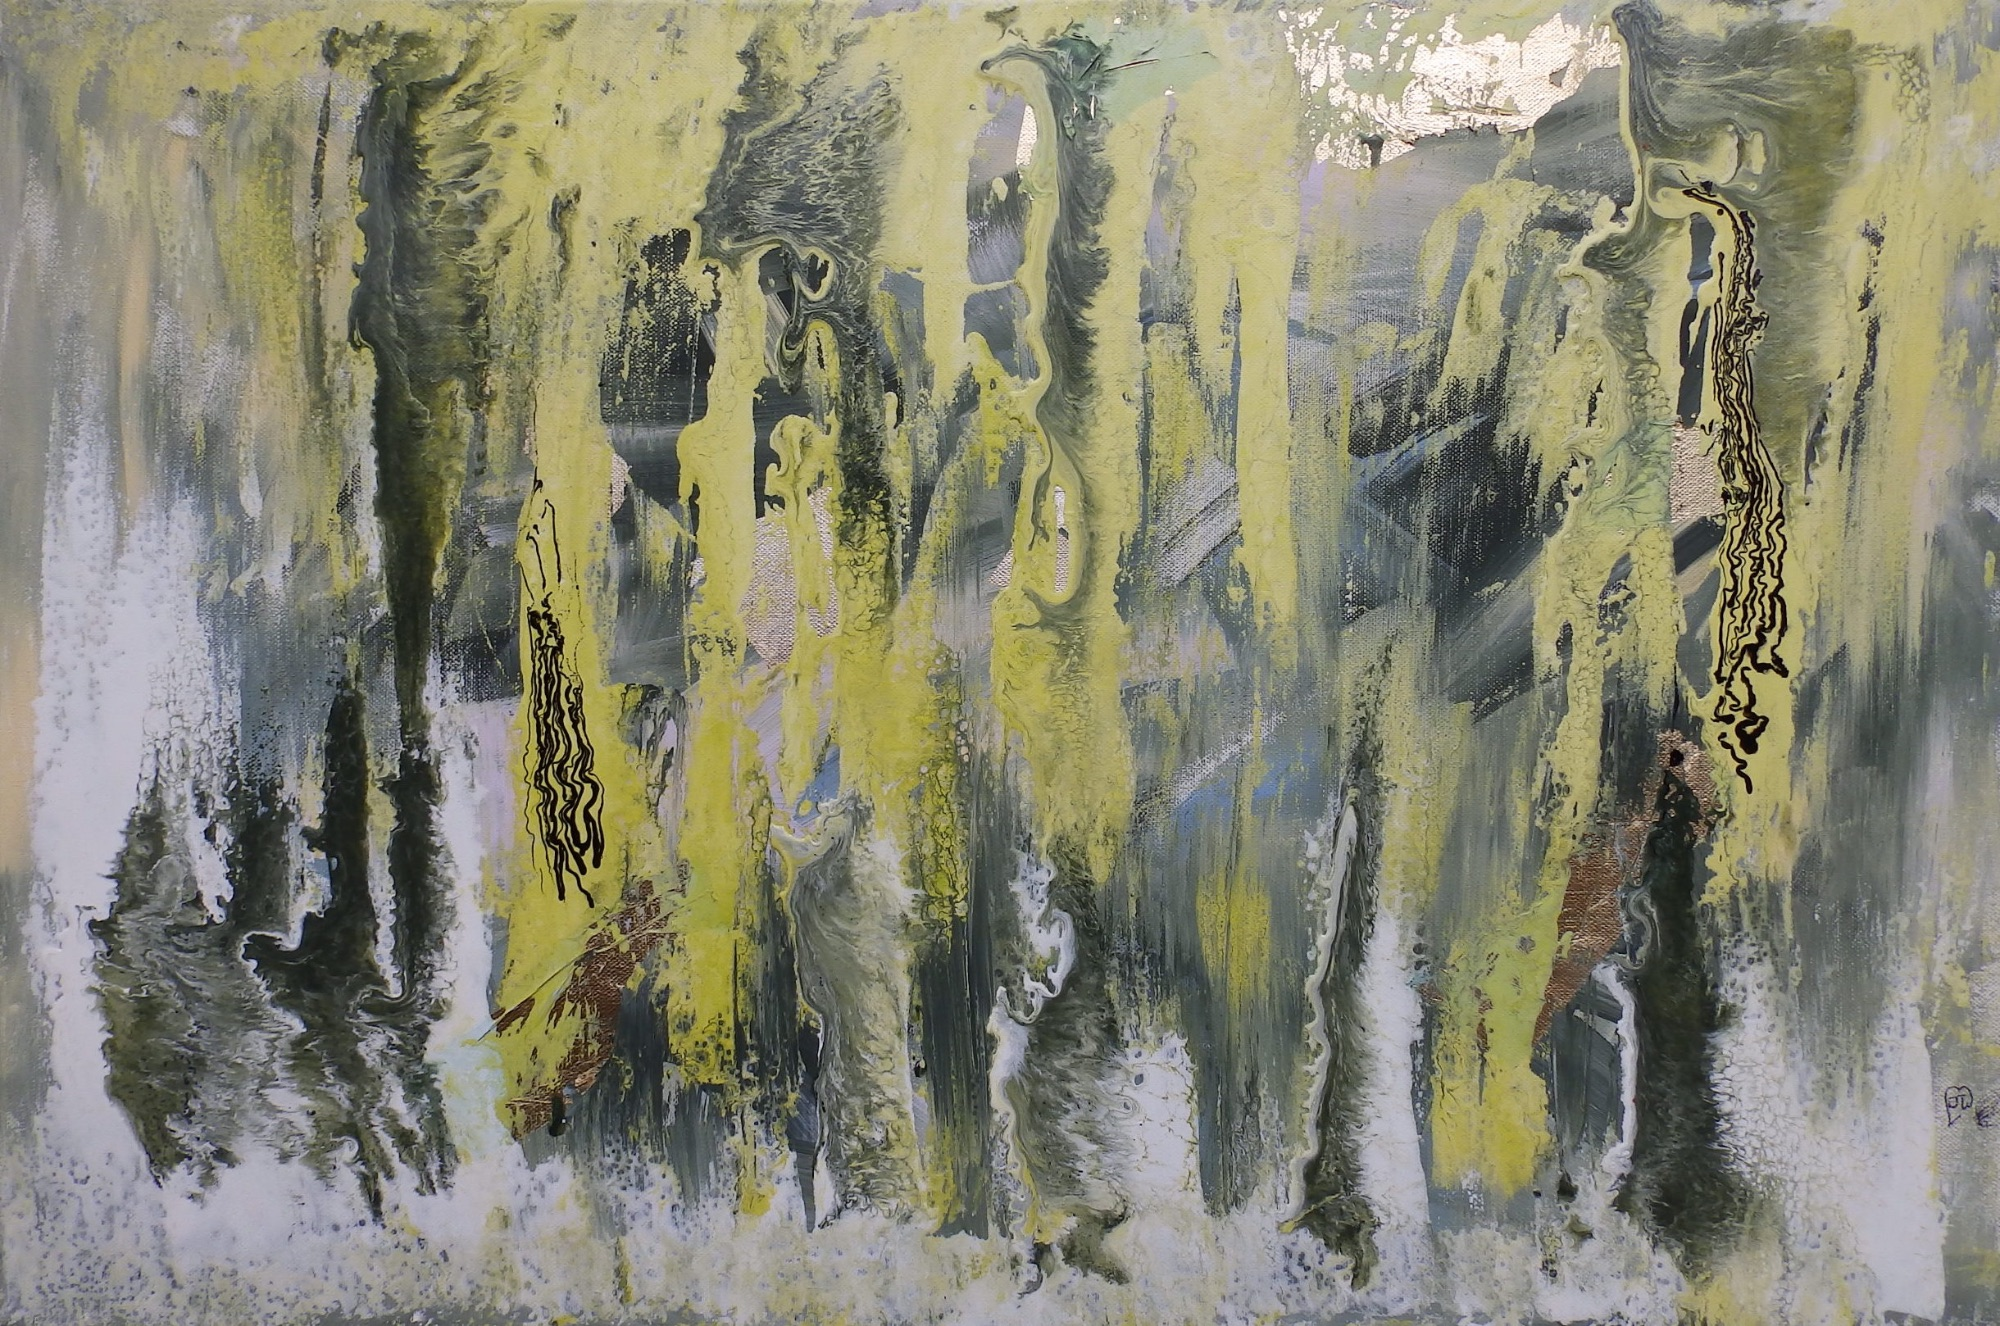 Forest Green - 20 x 30 inches by (c) Janet Watson Art